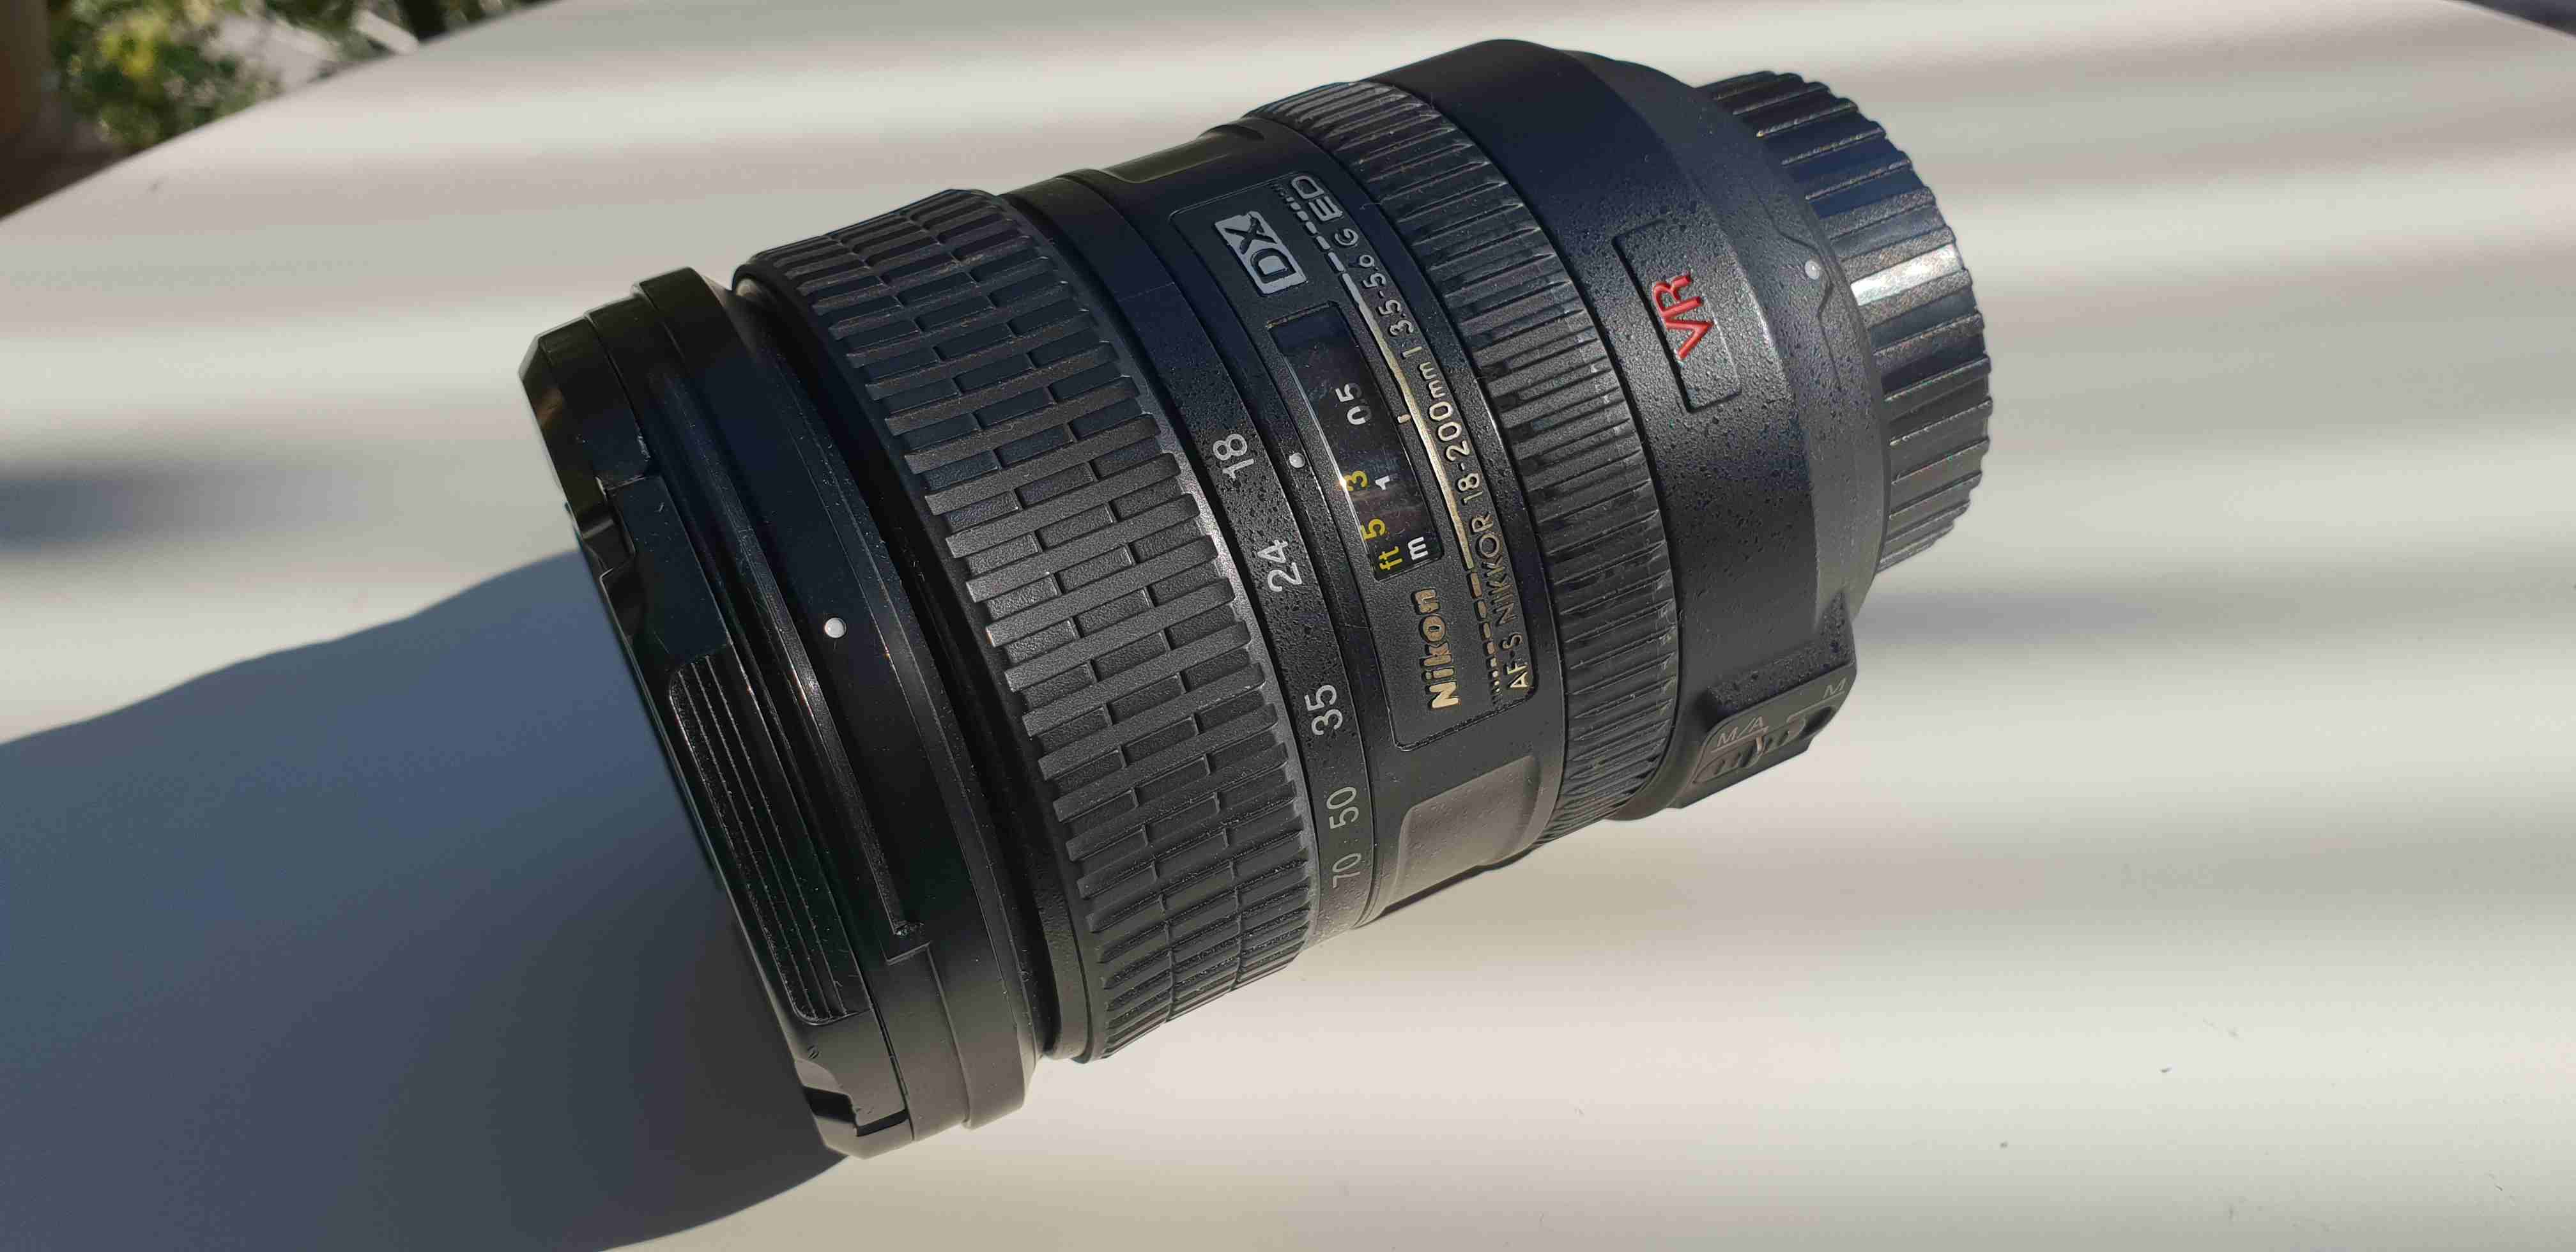 We have all kinds of Nikon and Canon cameras and lenses available in stock for sale. Brand new and original cameras and lenses with warranty.Canon Cameras:Canon-  عدسة نيكون 18 200vr لا...